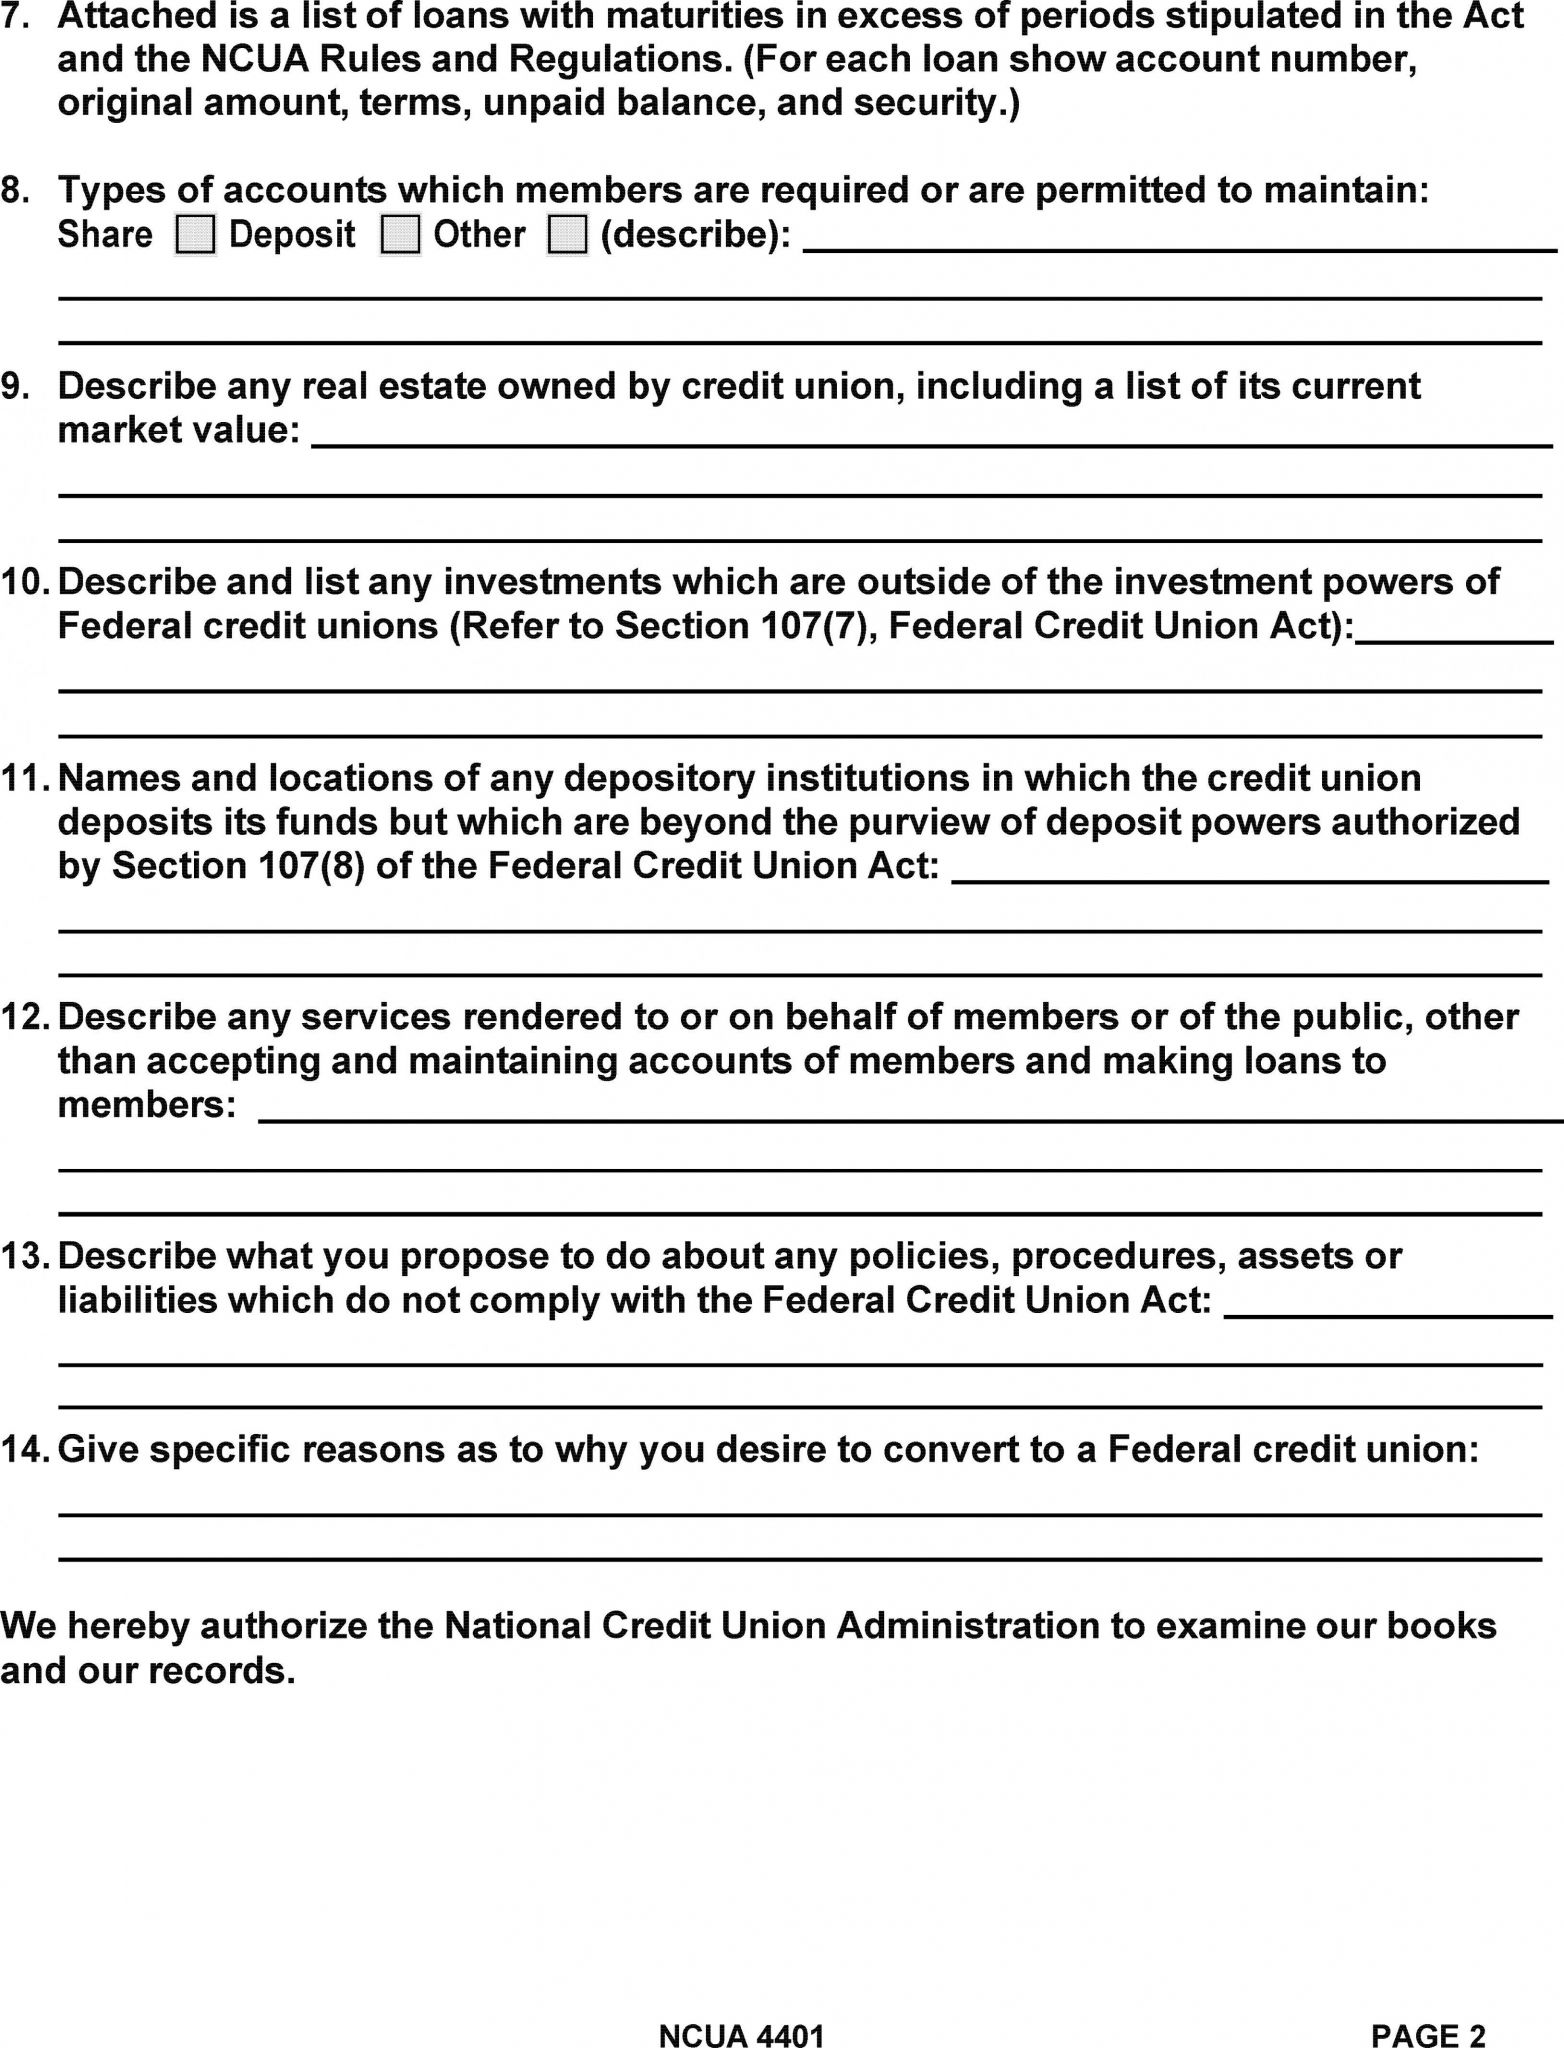 33 Government Spending Worksheet Answers